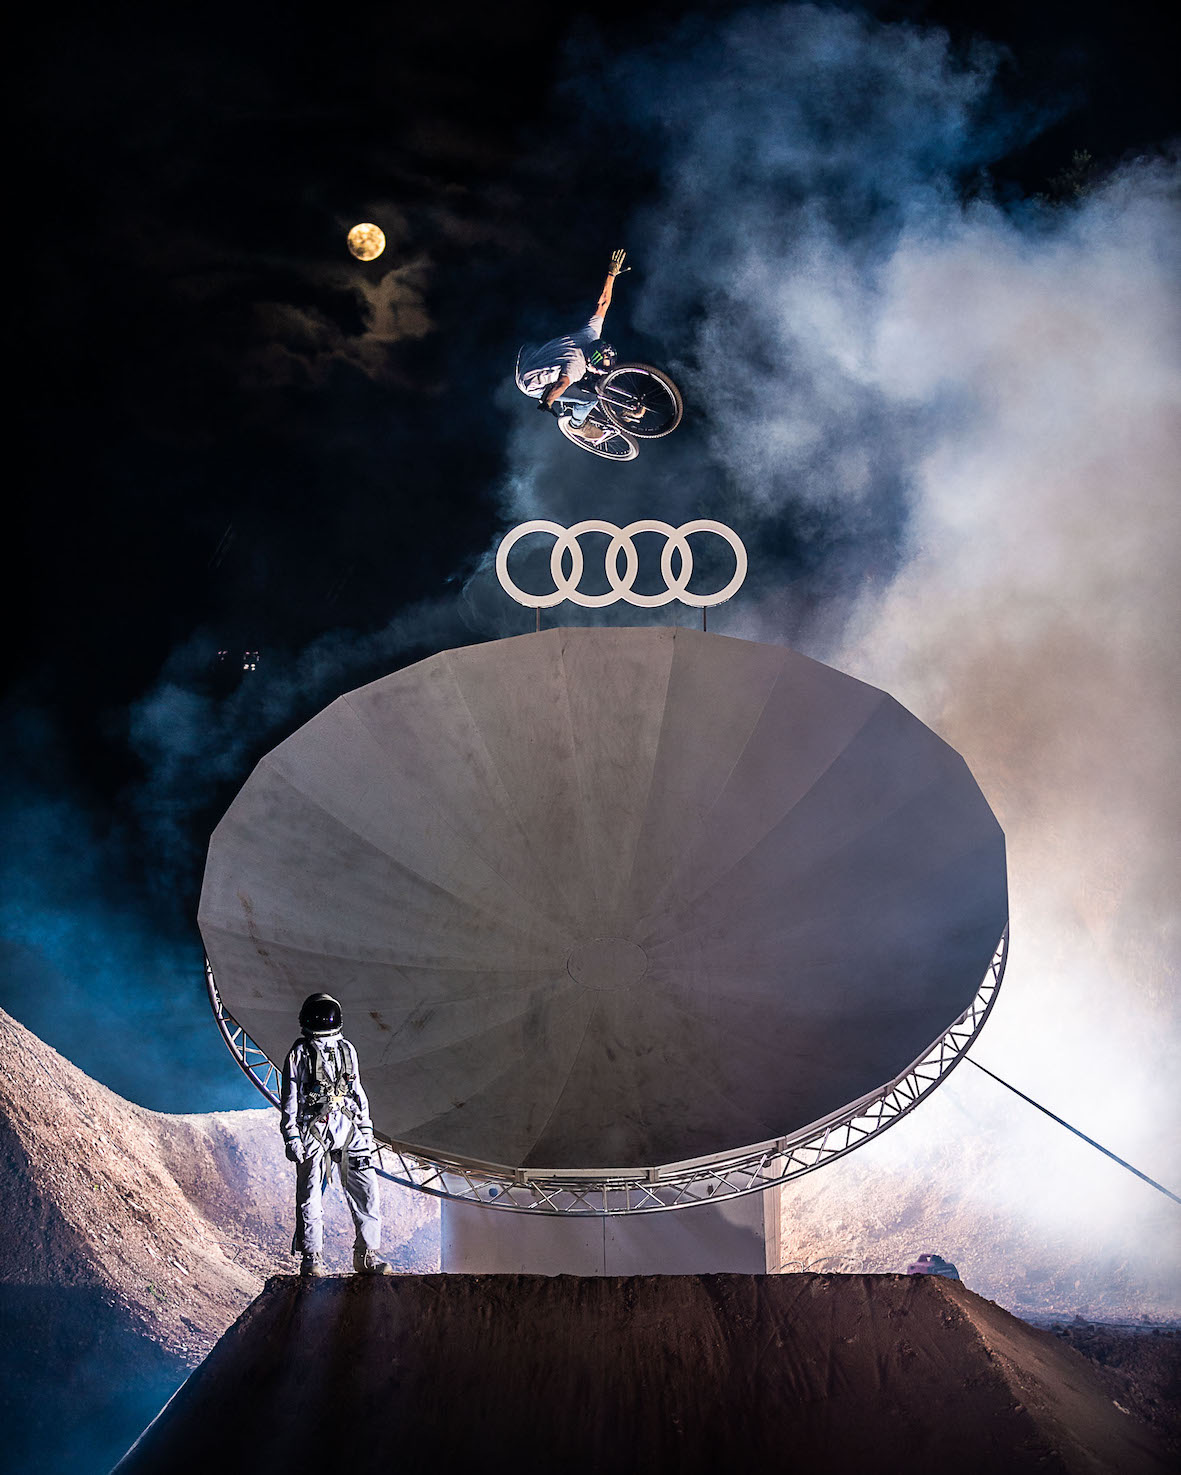 The Audi Nines Freeride and Slopestyle Mountain Bike event is a go for 2020